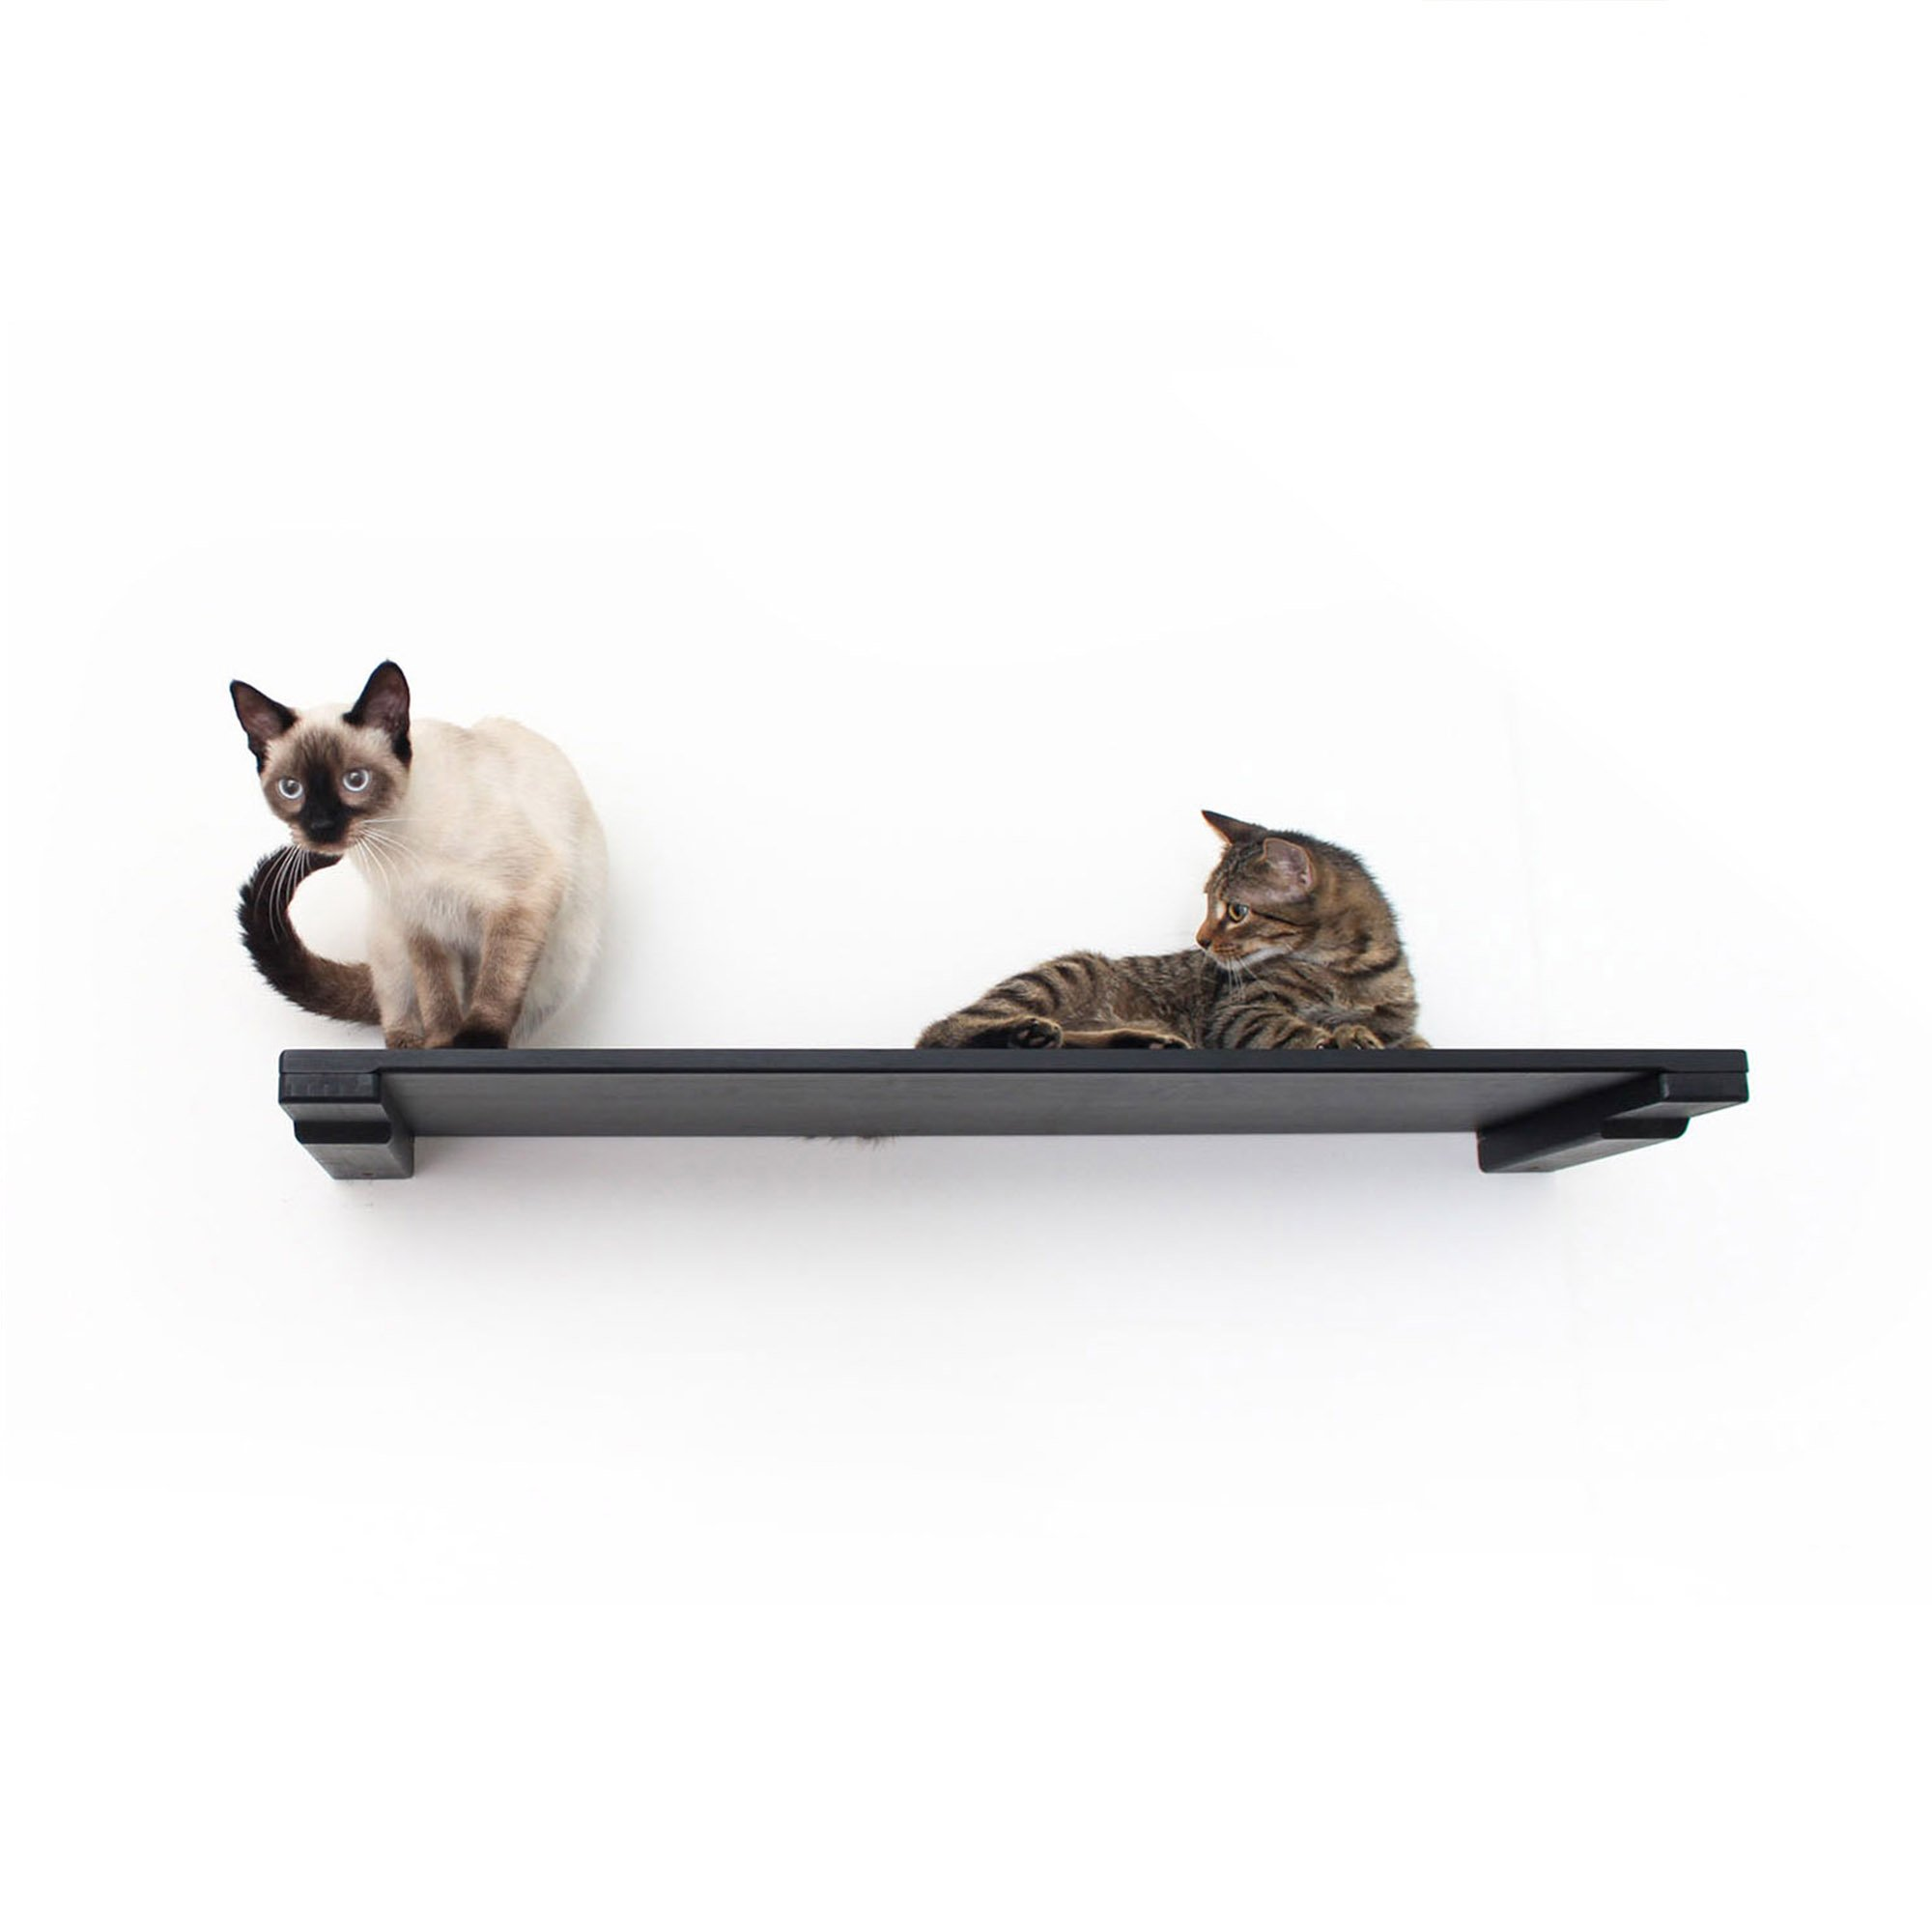 """Catastrophicreations The Cat Mod 34"""" Solid Wood Shelf For Cats In Onyx, 34 In W X 3 In H, 8 Lb"""